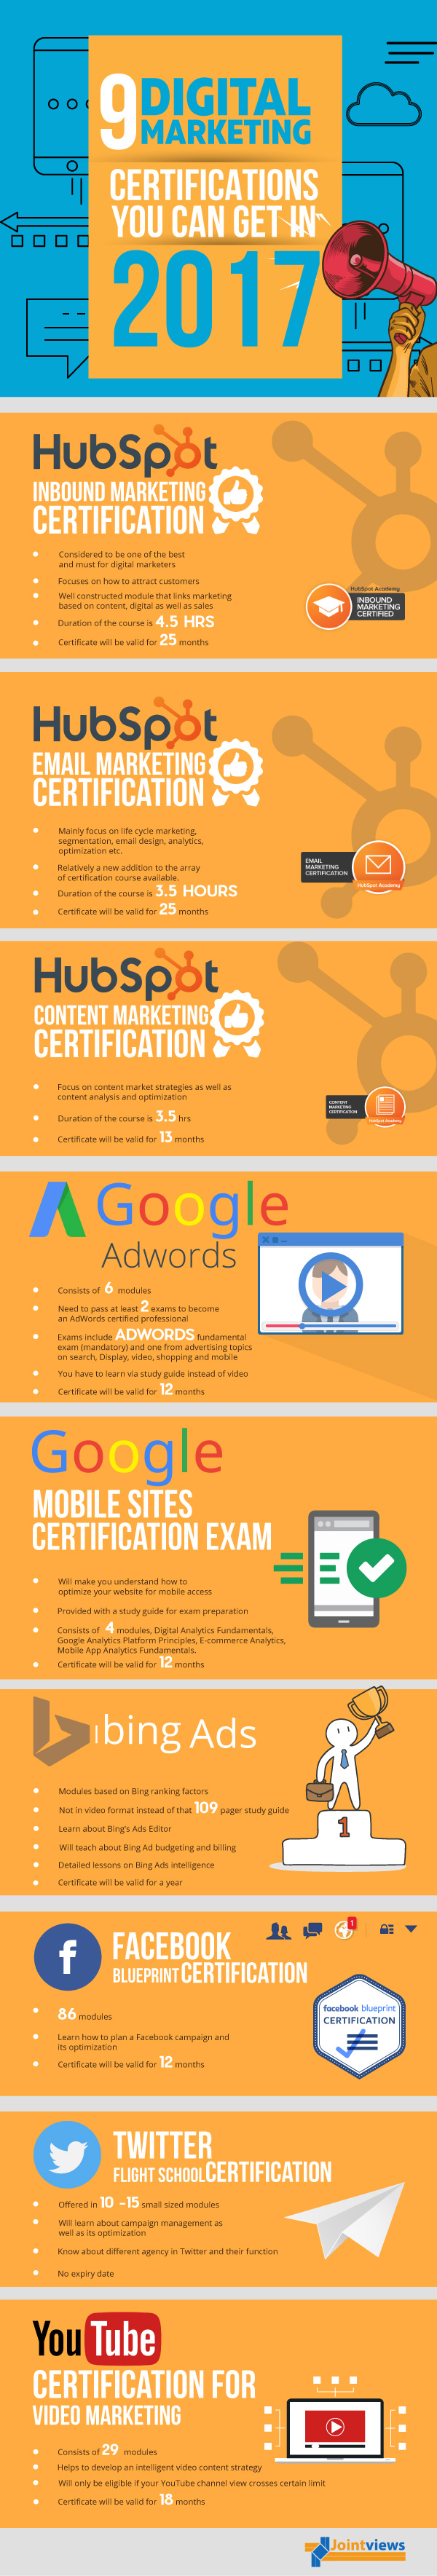 Why You Must Get Digital Marketing Certification - Infographic